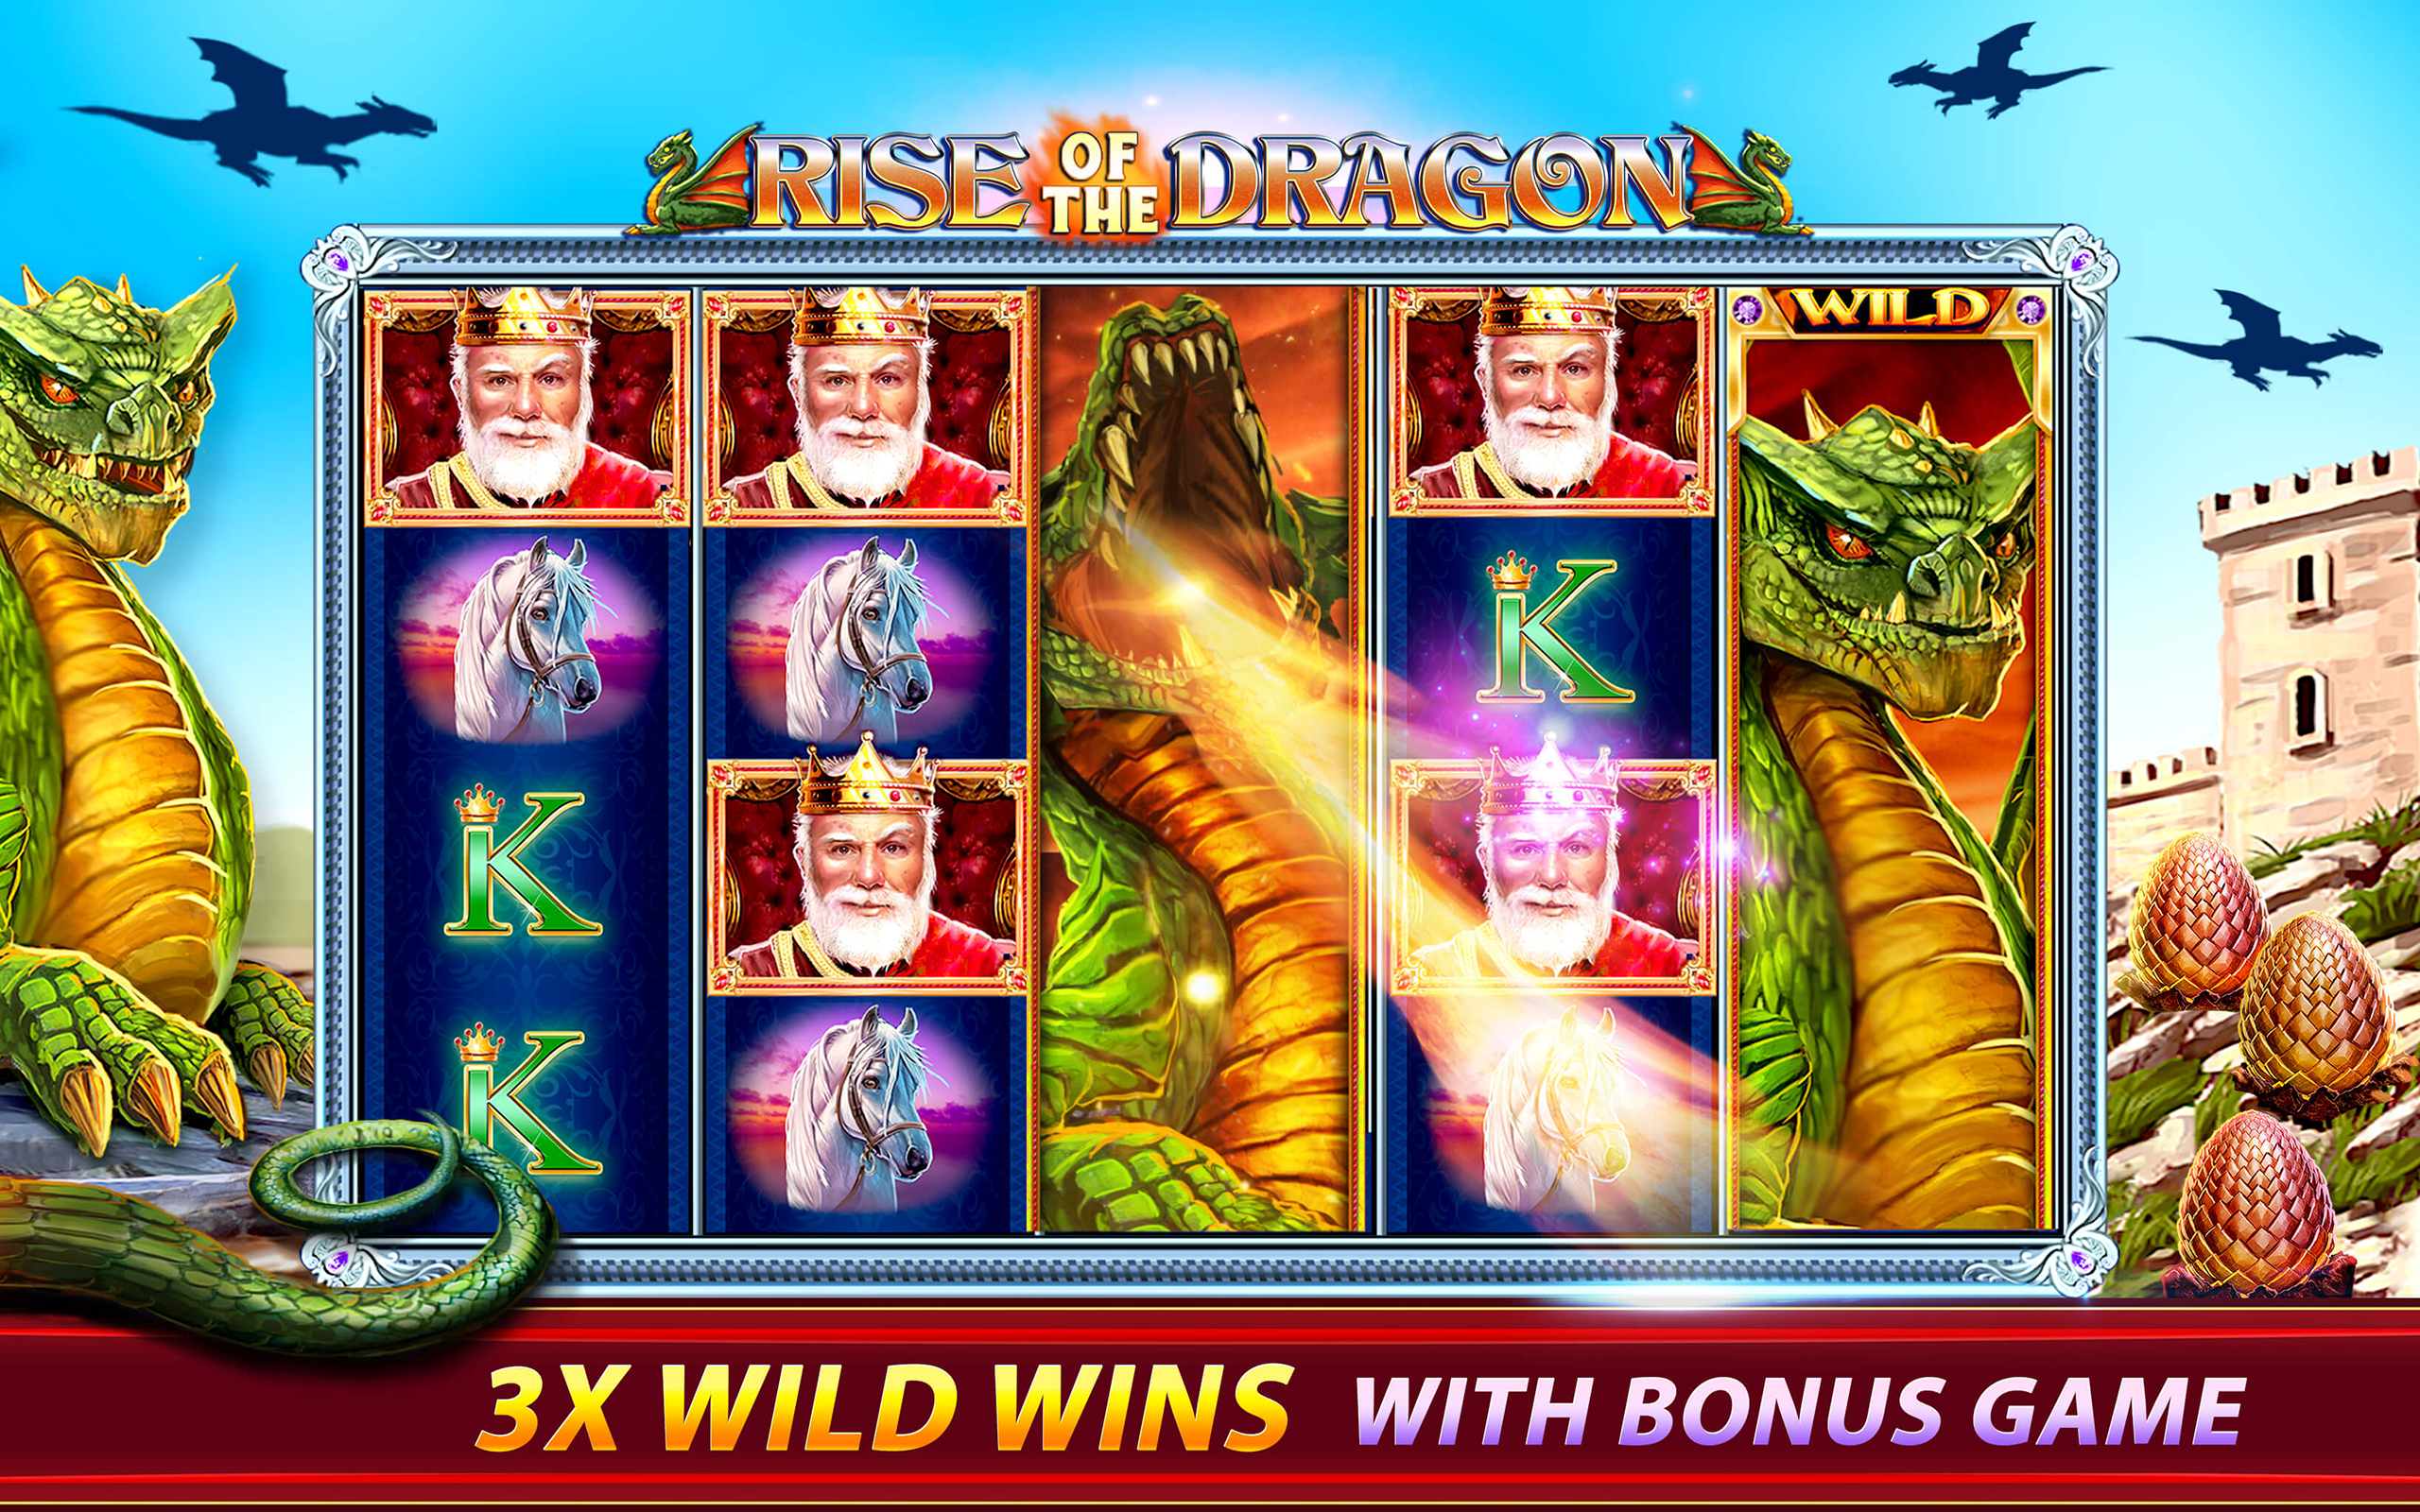 Slots Puzzles Free Vegas Casino Slot Machines With 777 Slots Tournament And Bonus Games Free Slots Jigsaw Puzzles For Free Coins Amazon In Appstore For Android